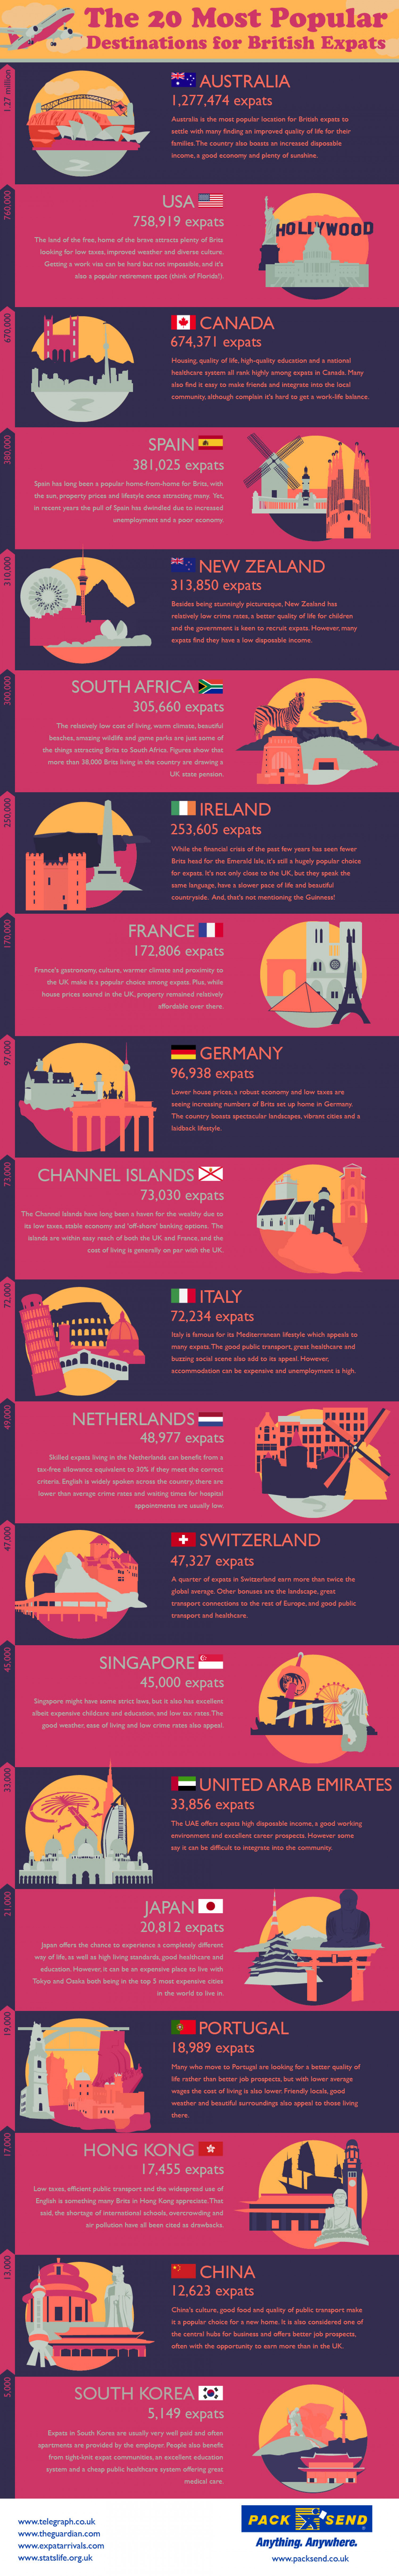 The 20 Most Popular Destinations for British Expats Infographic